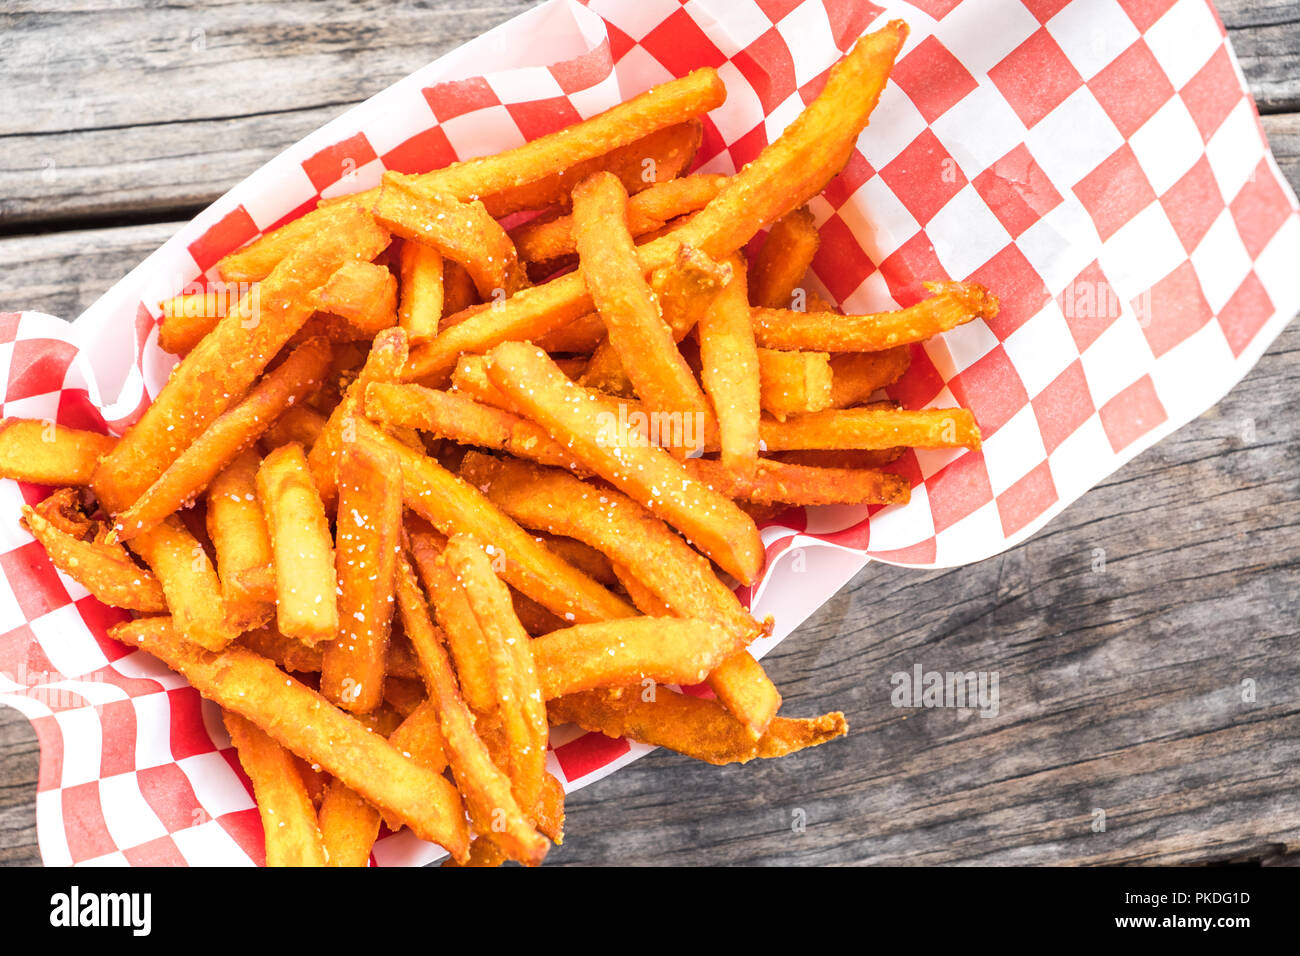 Paper basket of sweet potato fries with salt on rustic wooden table - Stock Image